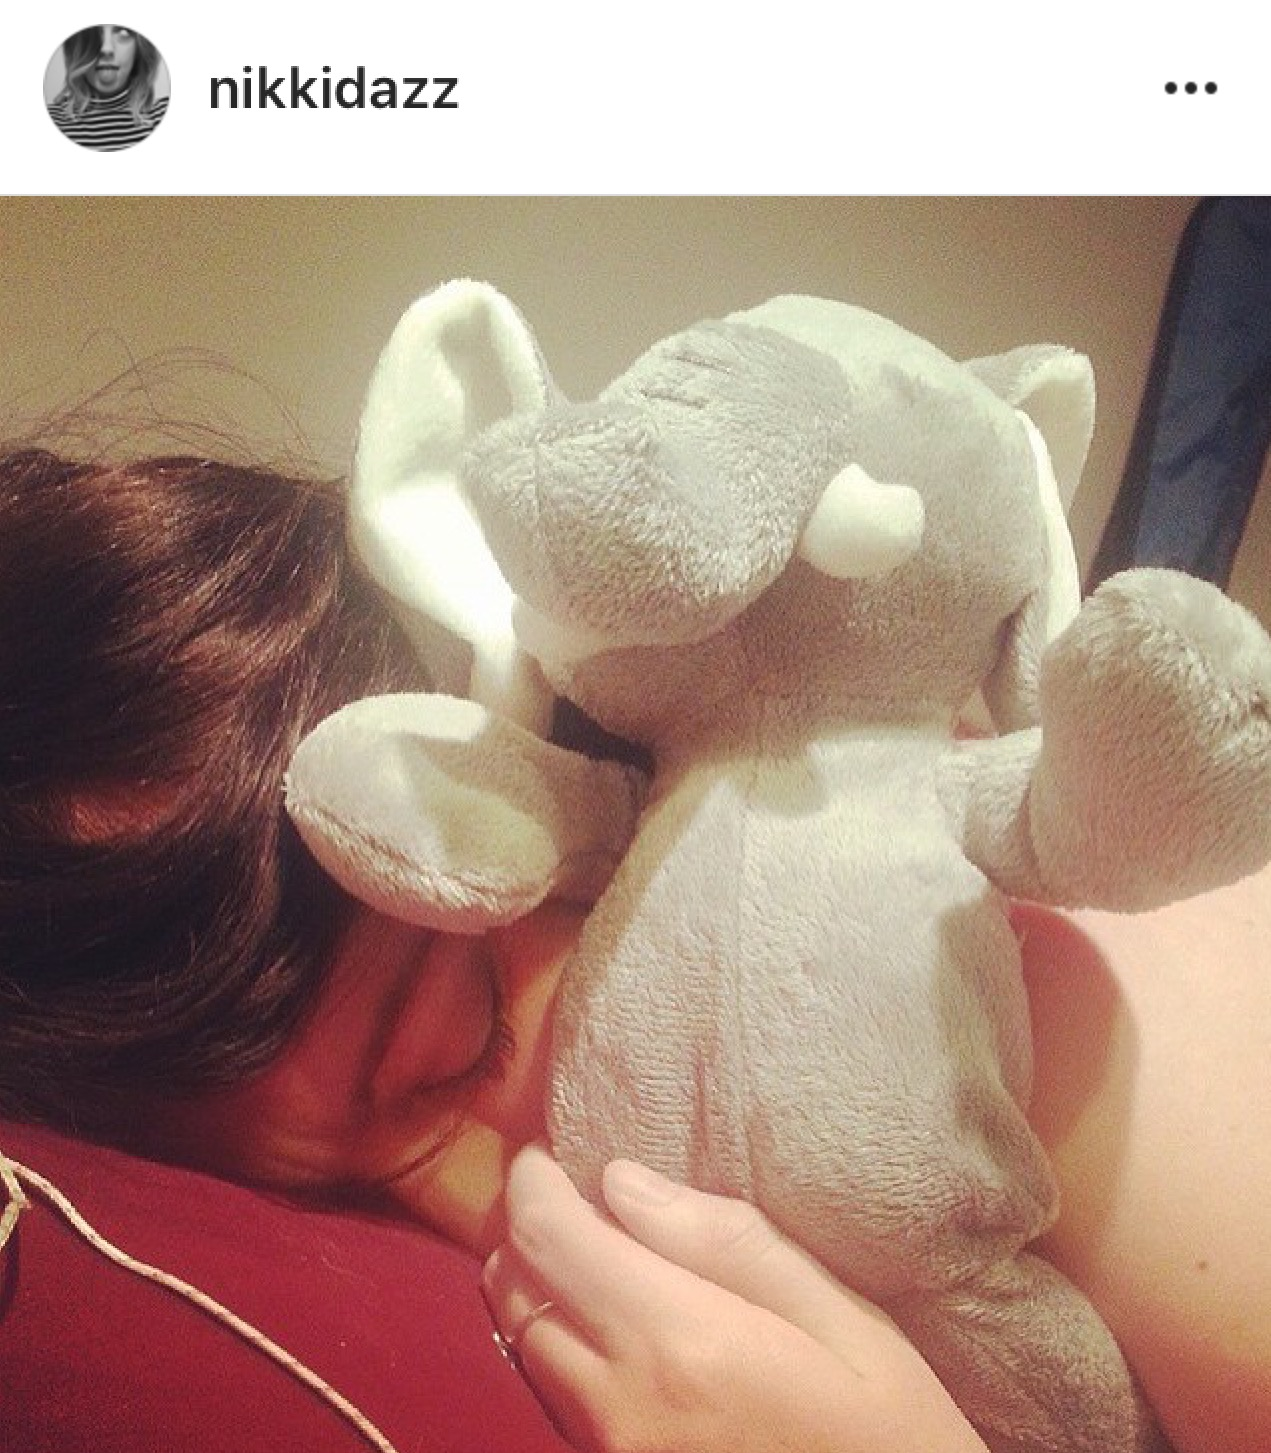 Ha! This was my 20th birthday. I was super unwell & taking a nap with the adorable hippo stuffed animal my sister got me! Never too old for a cute stuffed toy! I think I slept through most of that birthday.... oops.